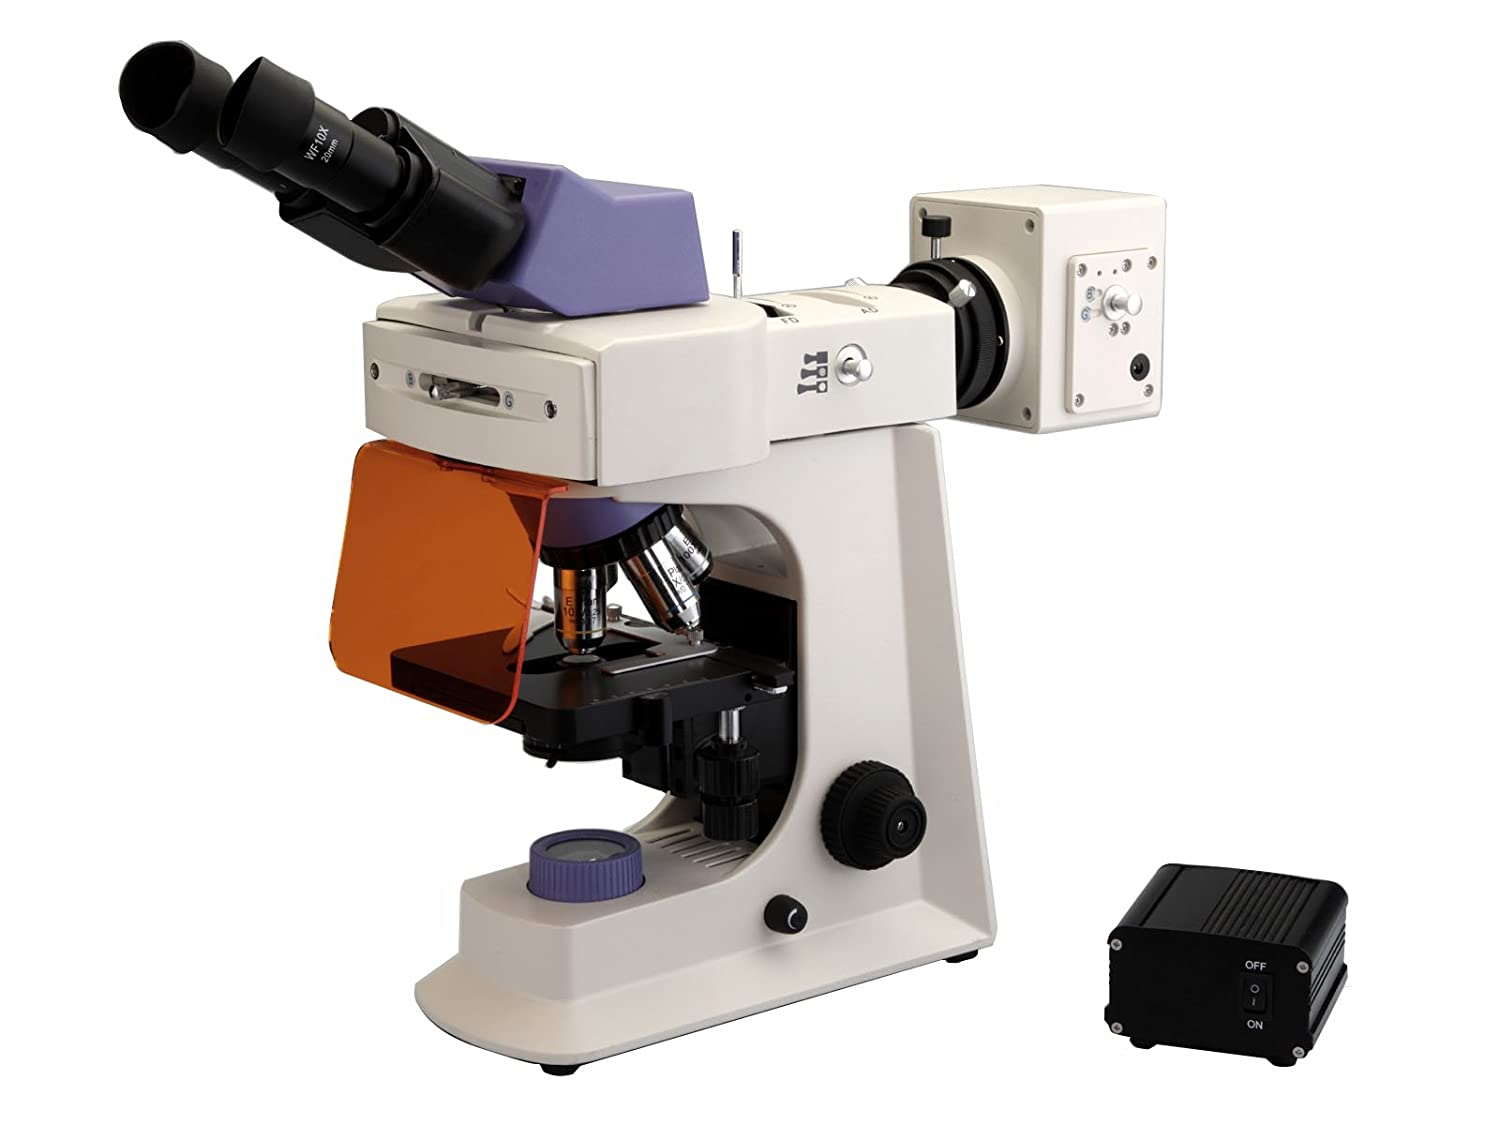 BestScope BS 2036FT LED Fluorescence Trinocular Compound Microscope WF10x Eyepieces Infinity Plan Objectives 40x 1000x Magnification LED and Halogen Illumination Abbe Condenser Iris Diaphragm Mechanical Stage 110V